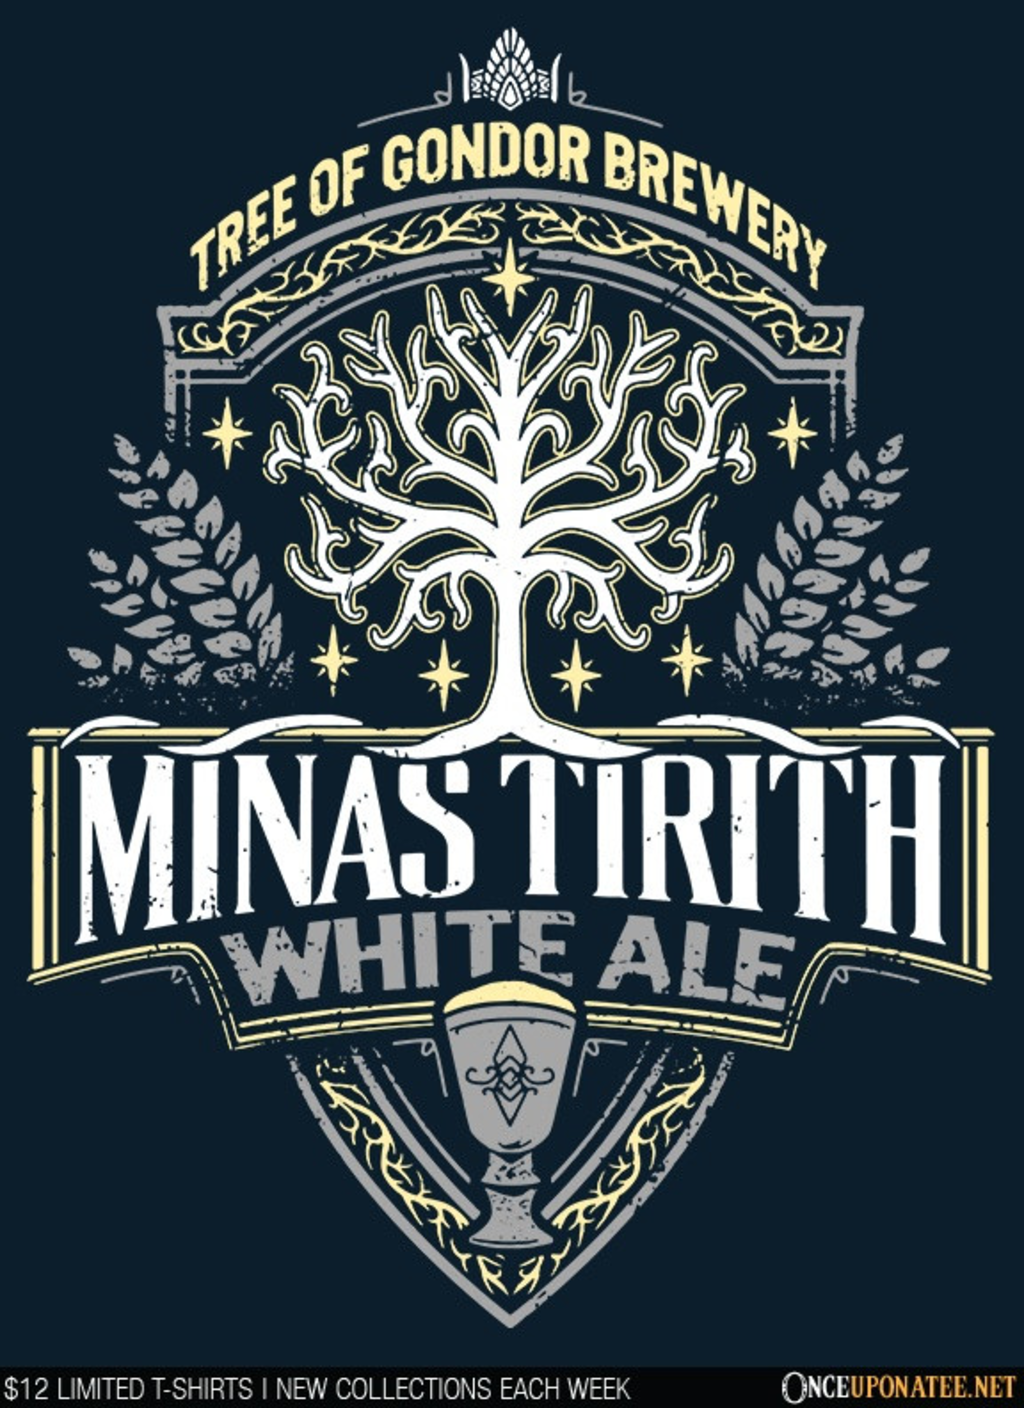 Once Upon a Tee: Minas Tirith White Ale